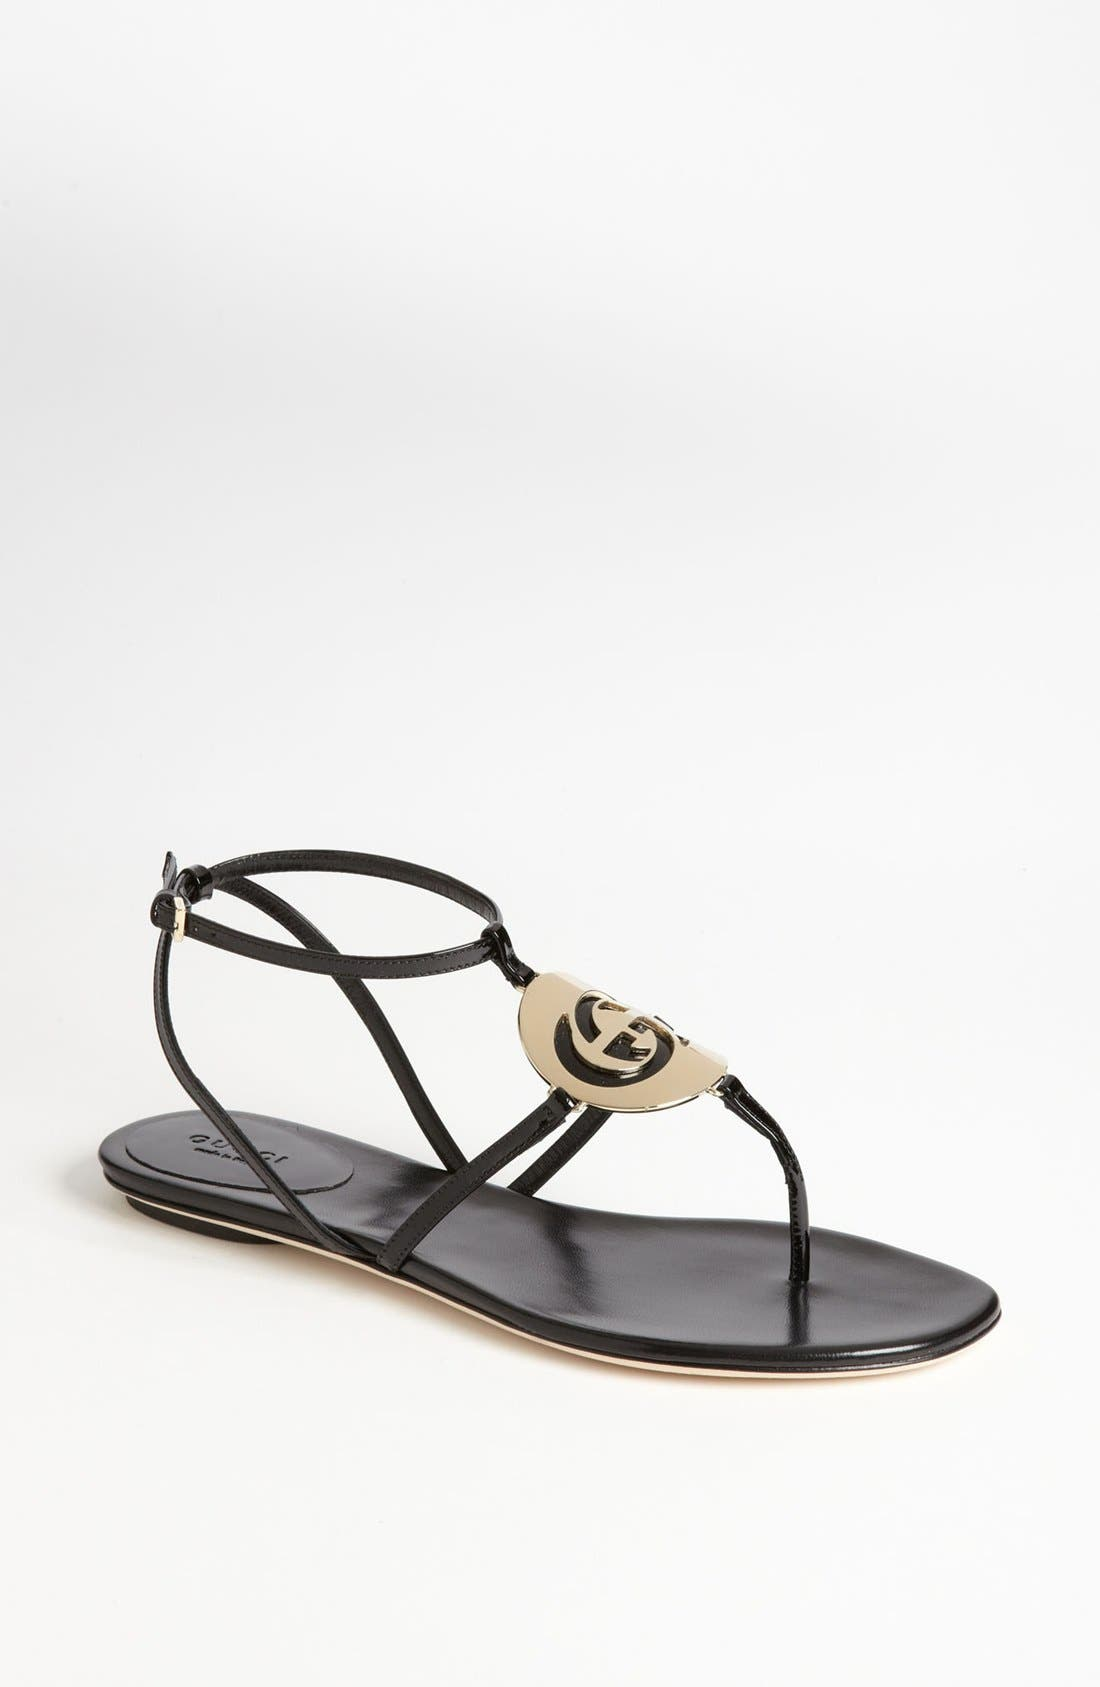 Alternate Image 1 Selected - Gucci 'New GG' Sandal